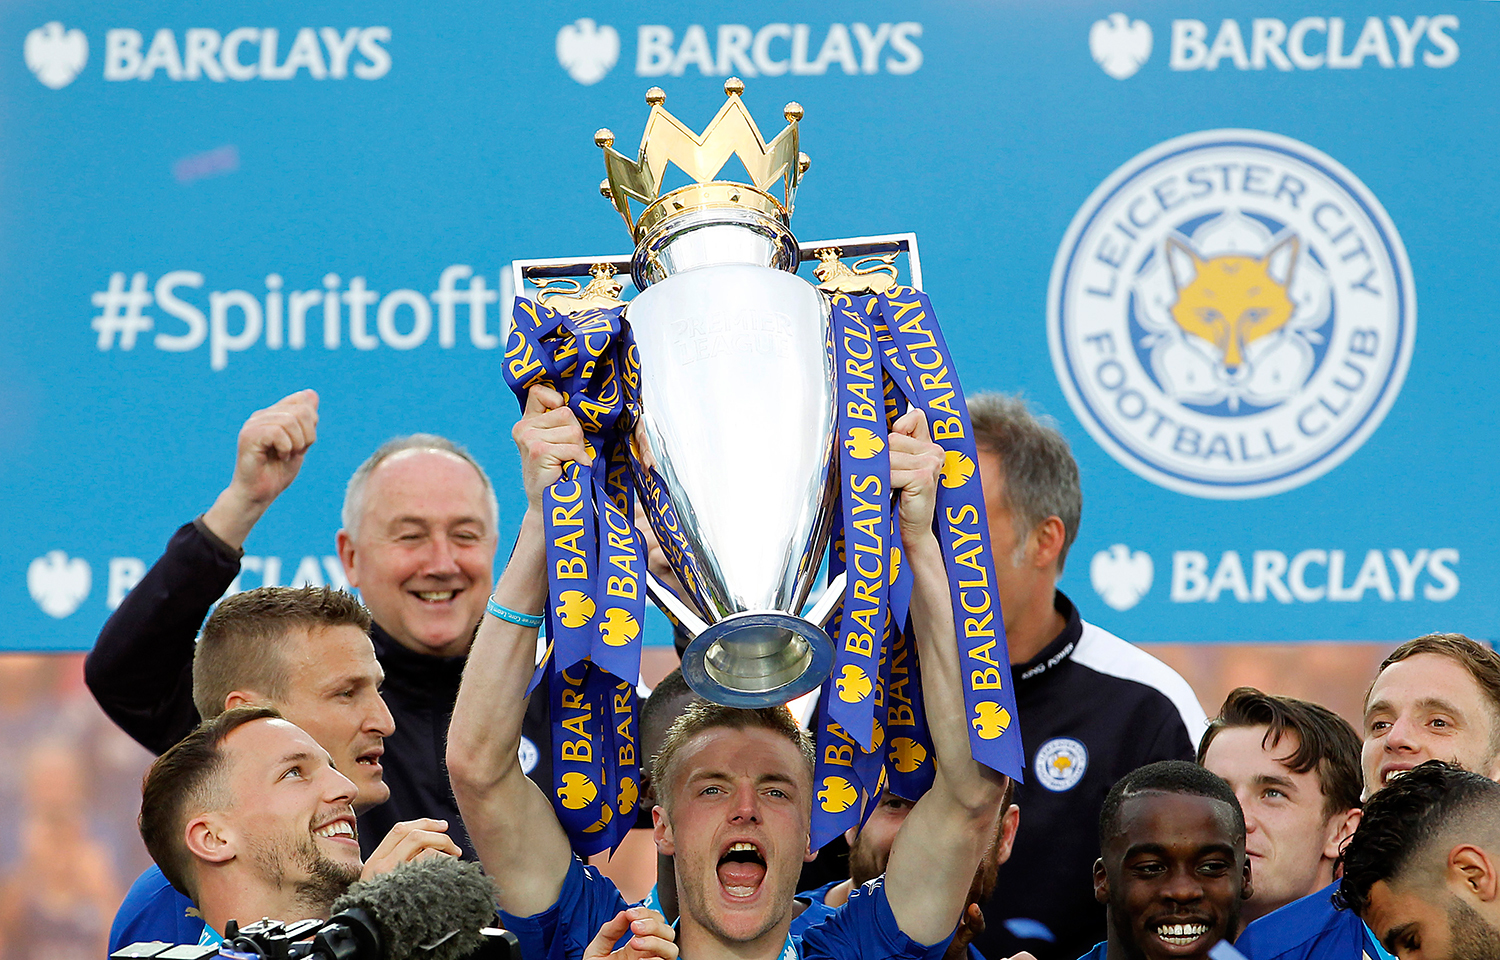 Leicester City's Jamie Vardy lifts the trophy as they celebrate winning the Barclays Premier League. — Reuters